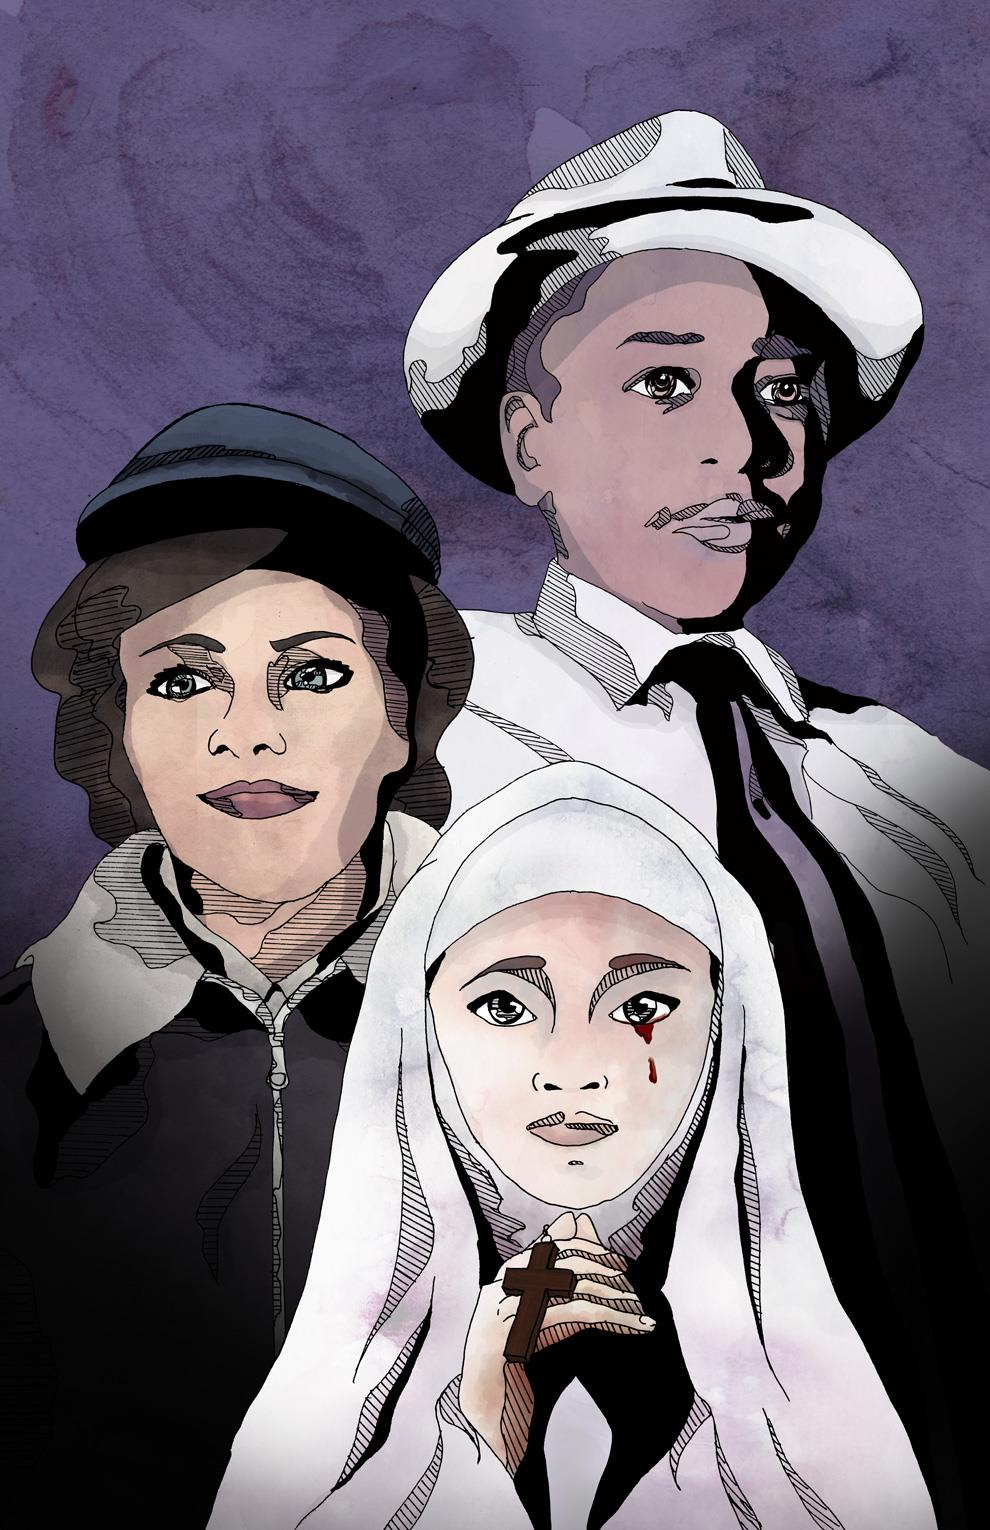 The Ballad of Emmett Till